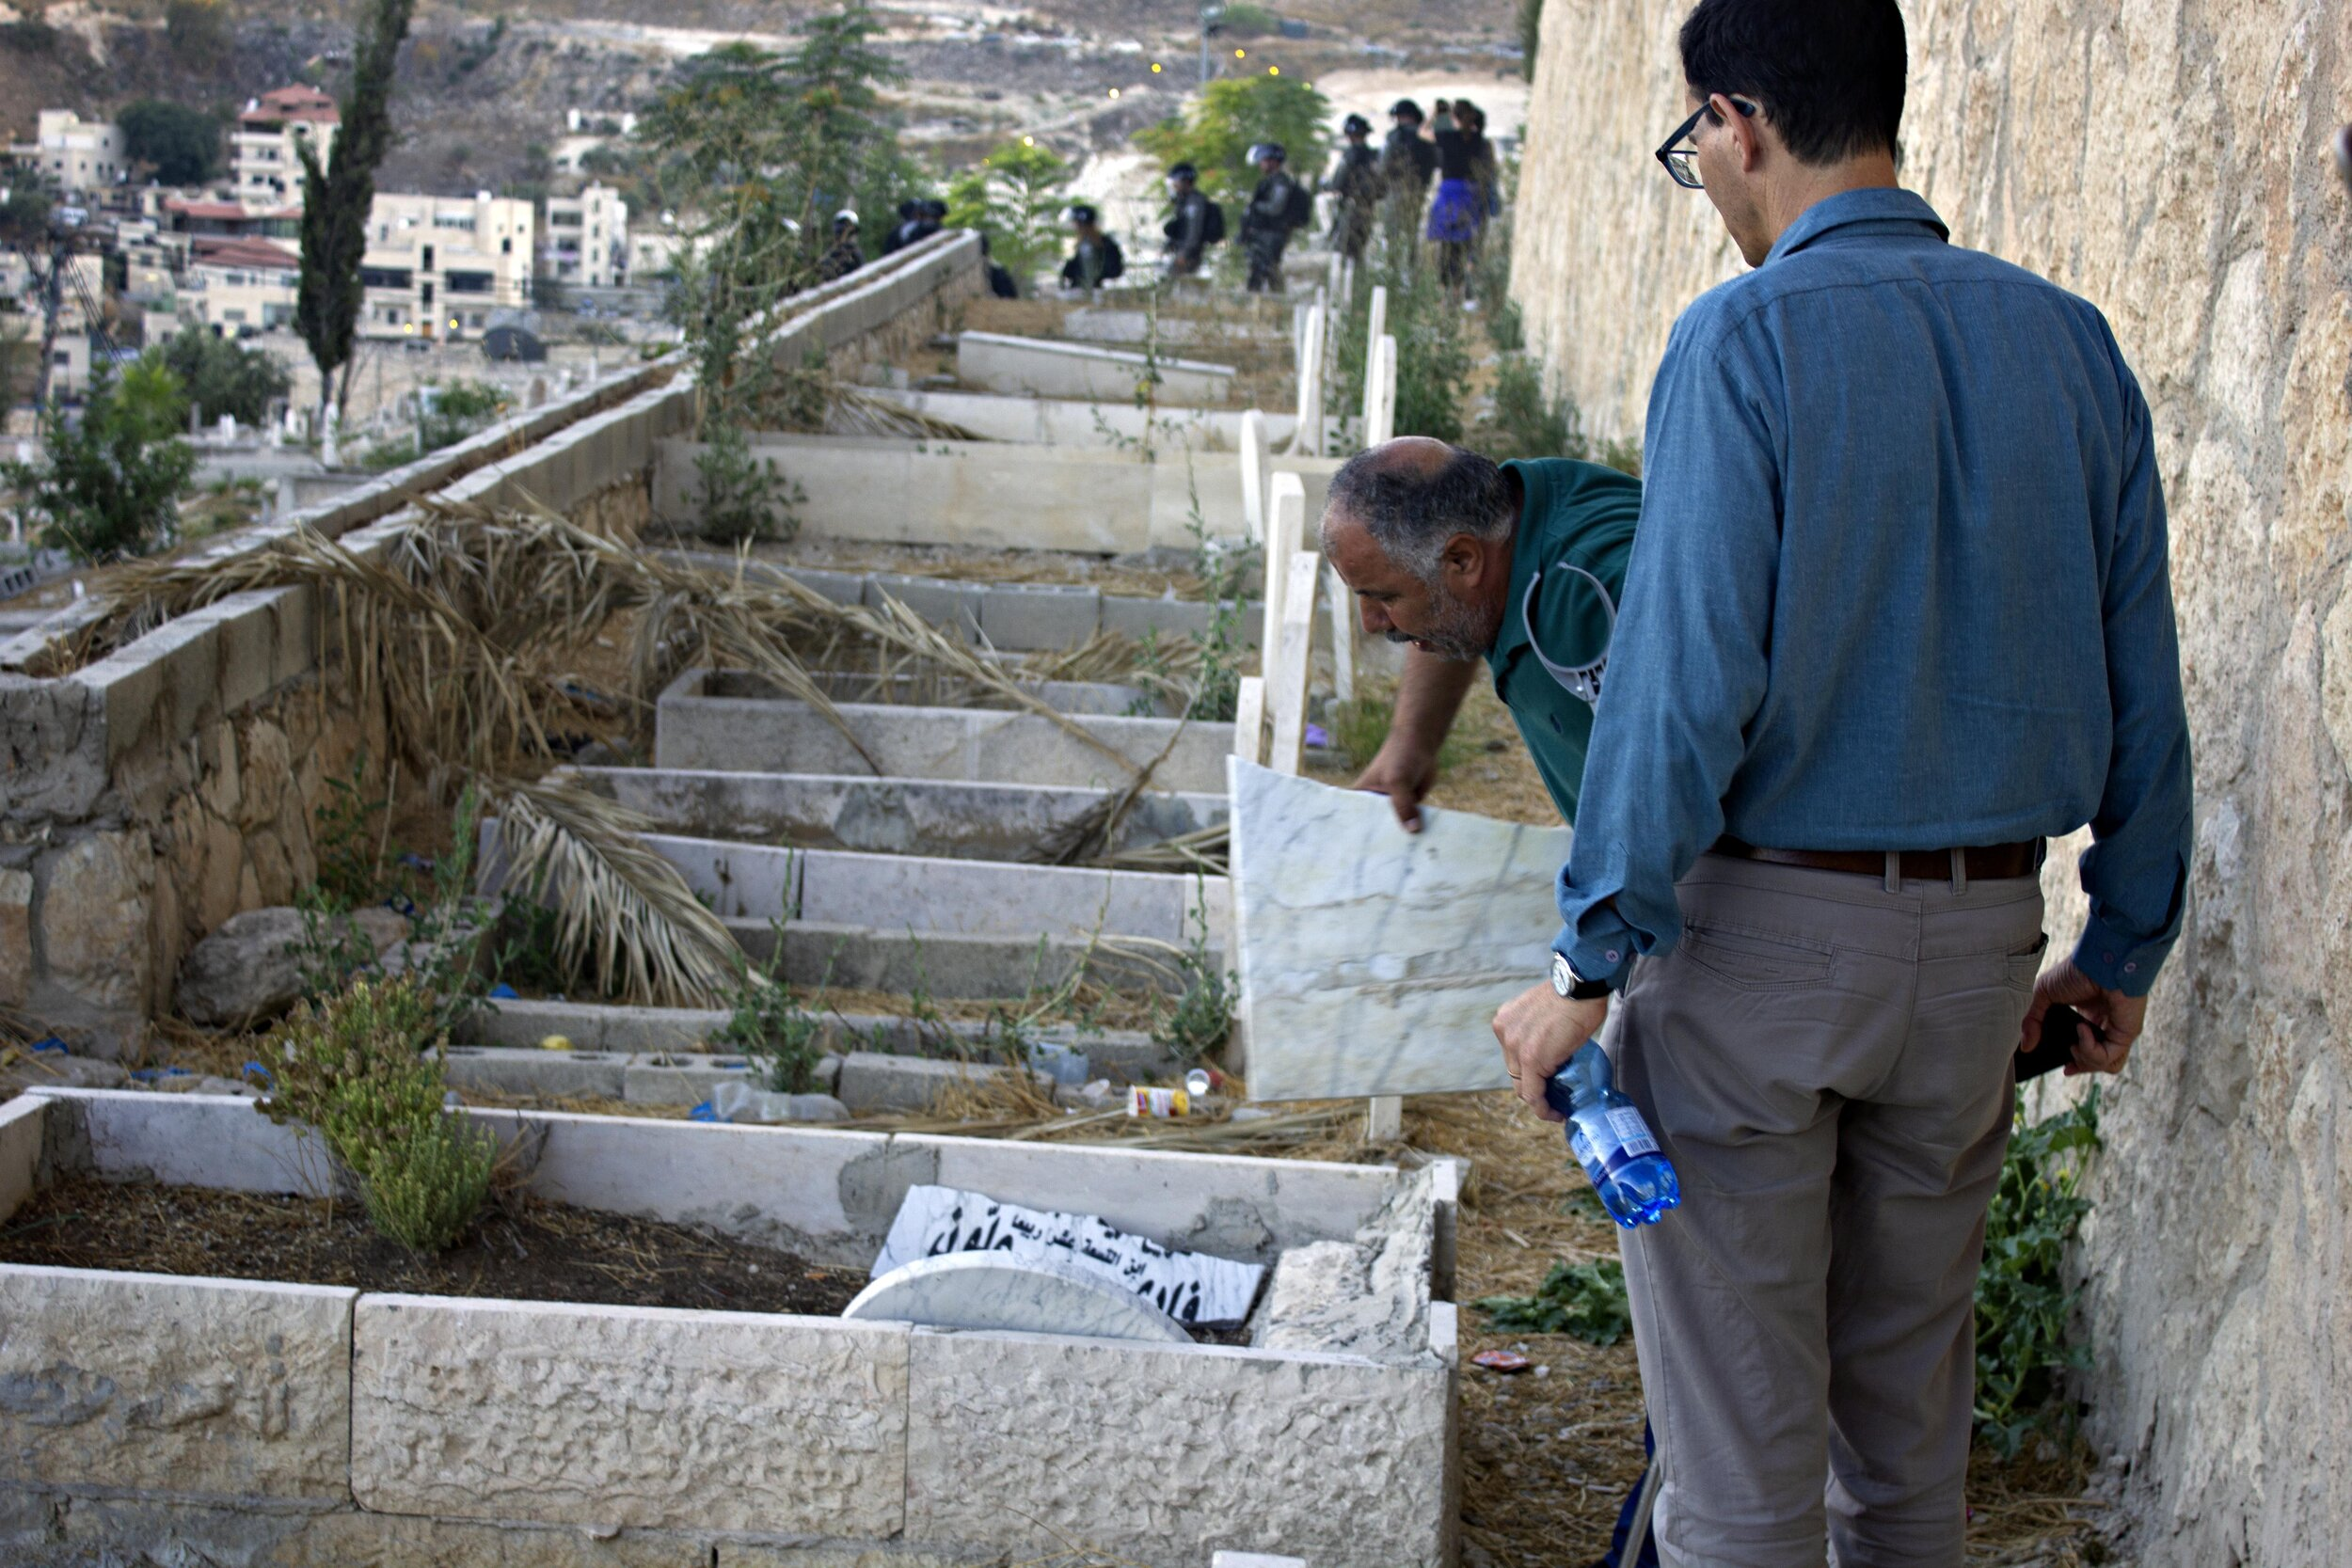 Mohammad Abu Hummus picking up the pieces of a gravestone that an Israeli police officer smashed